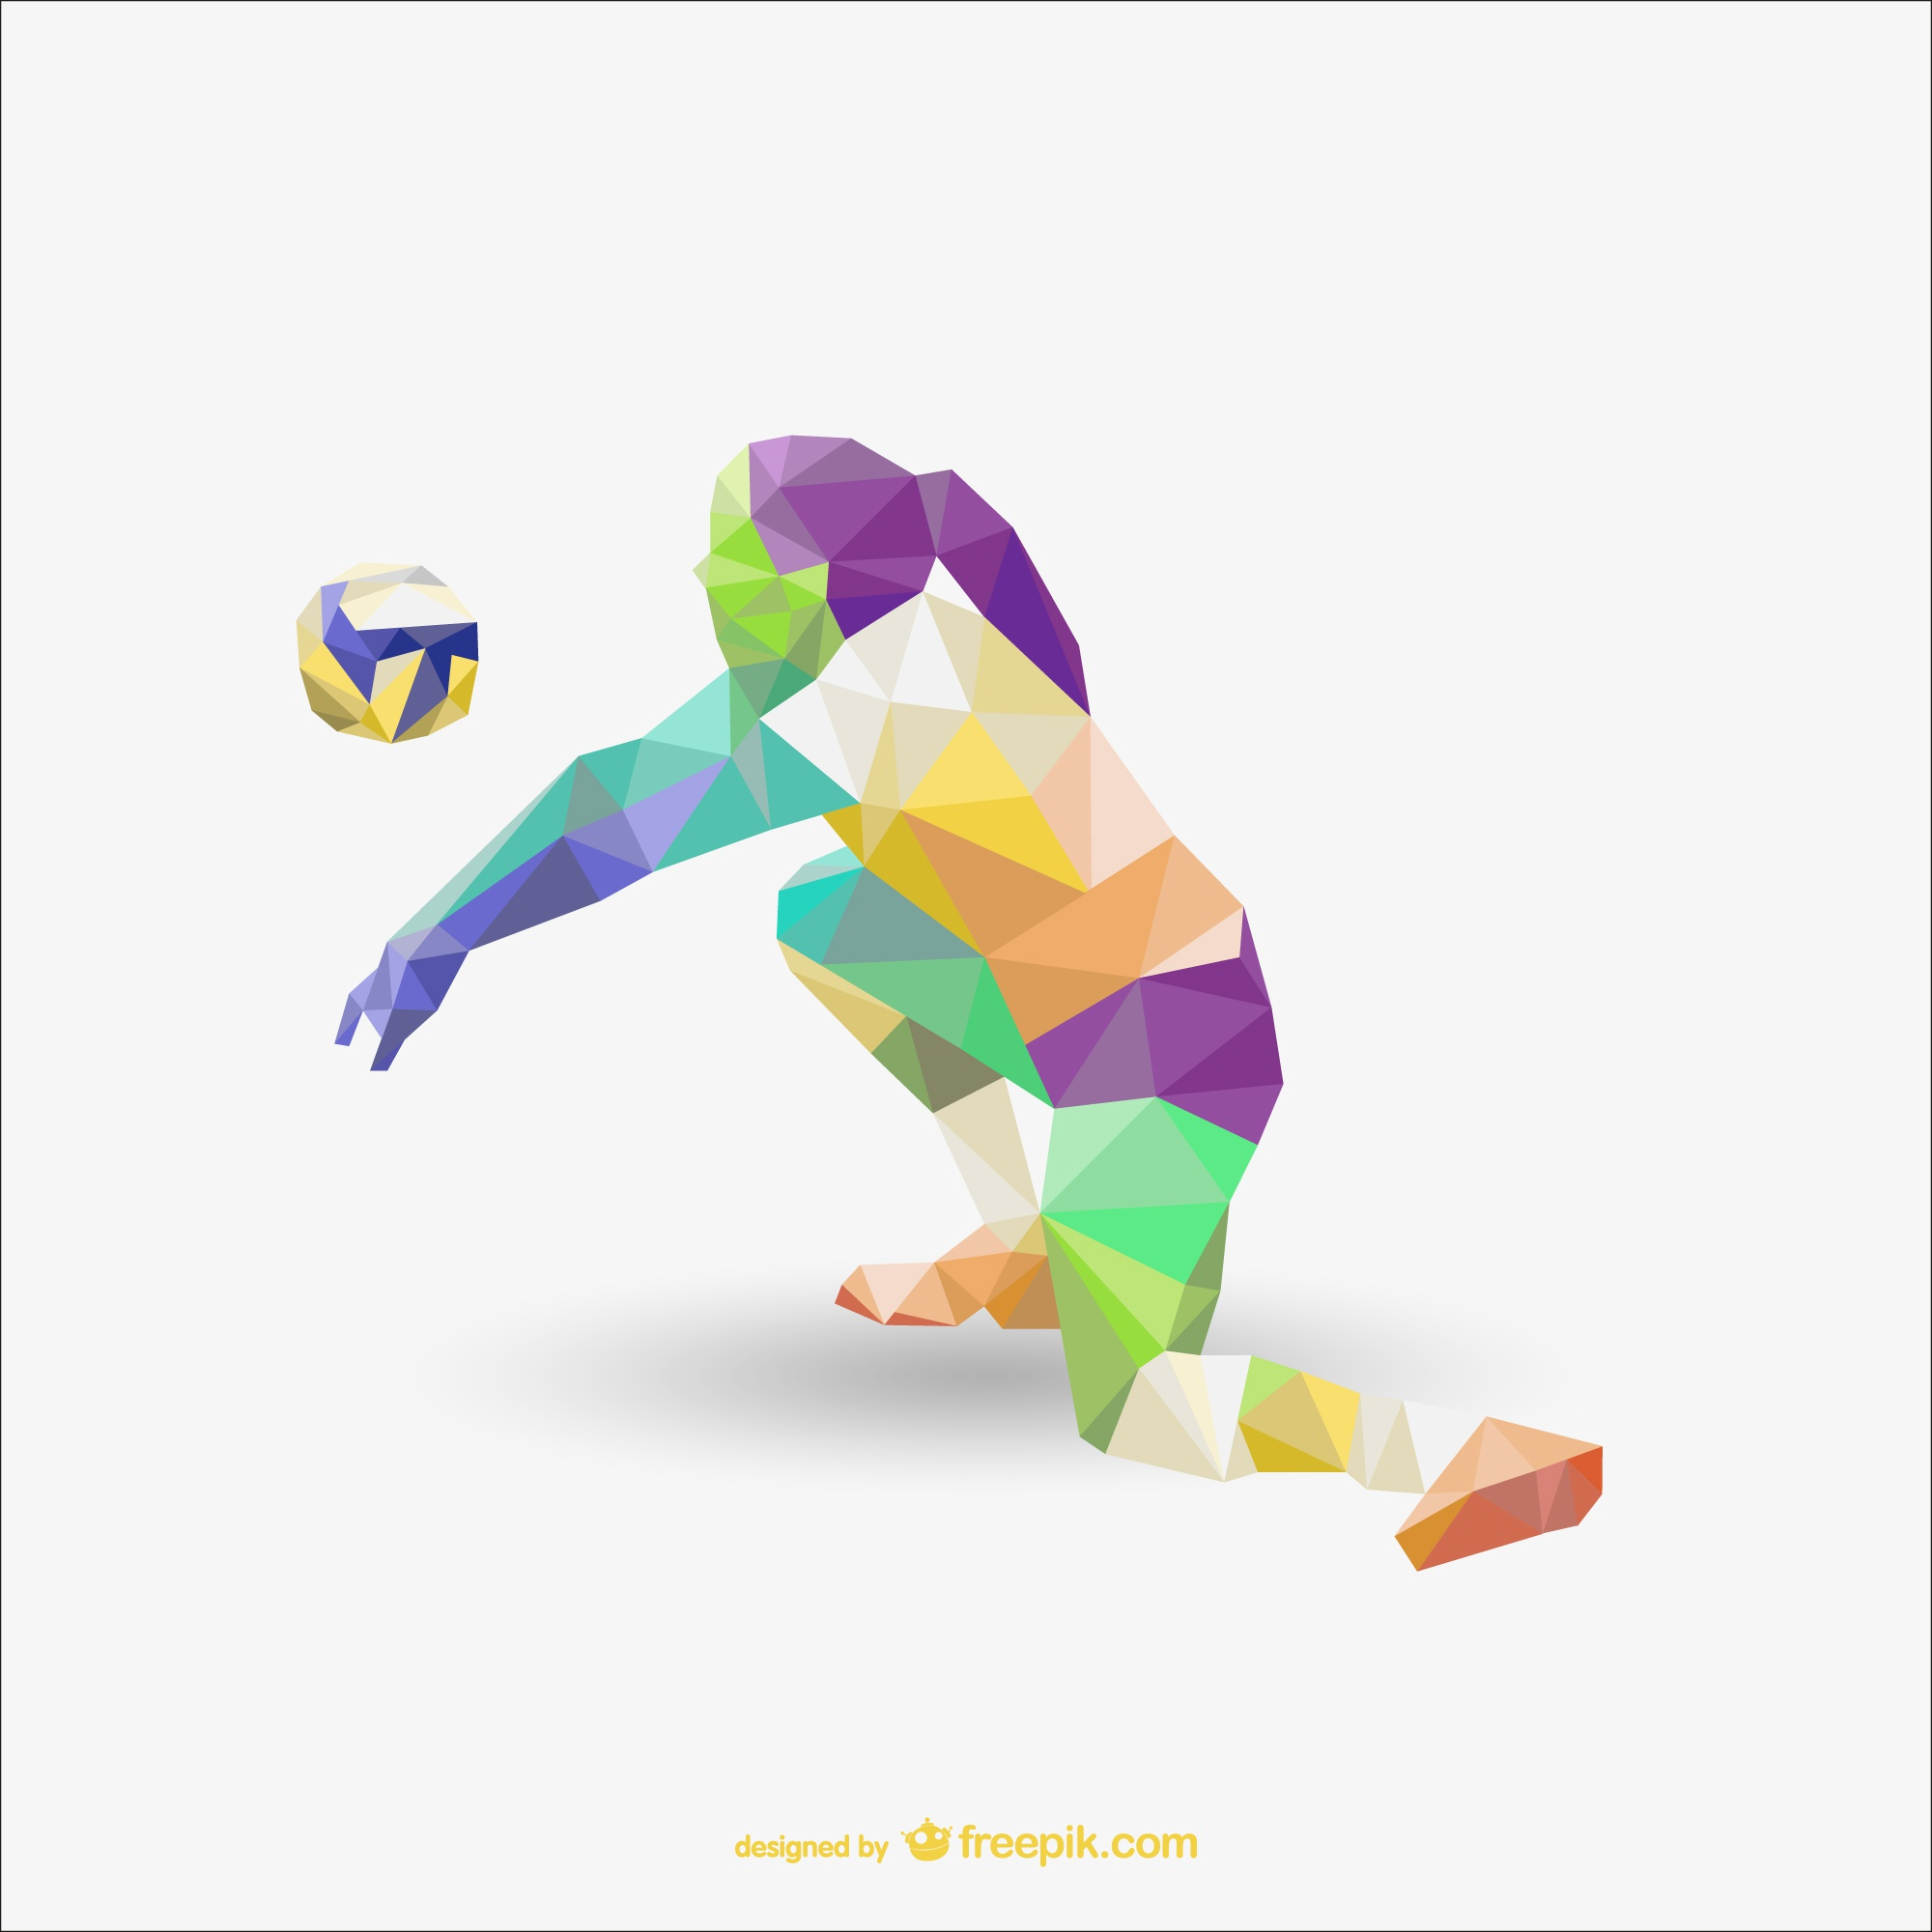 Voleyball player polygonal drawing